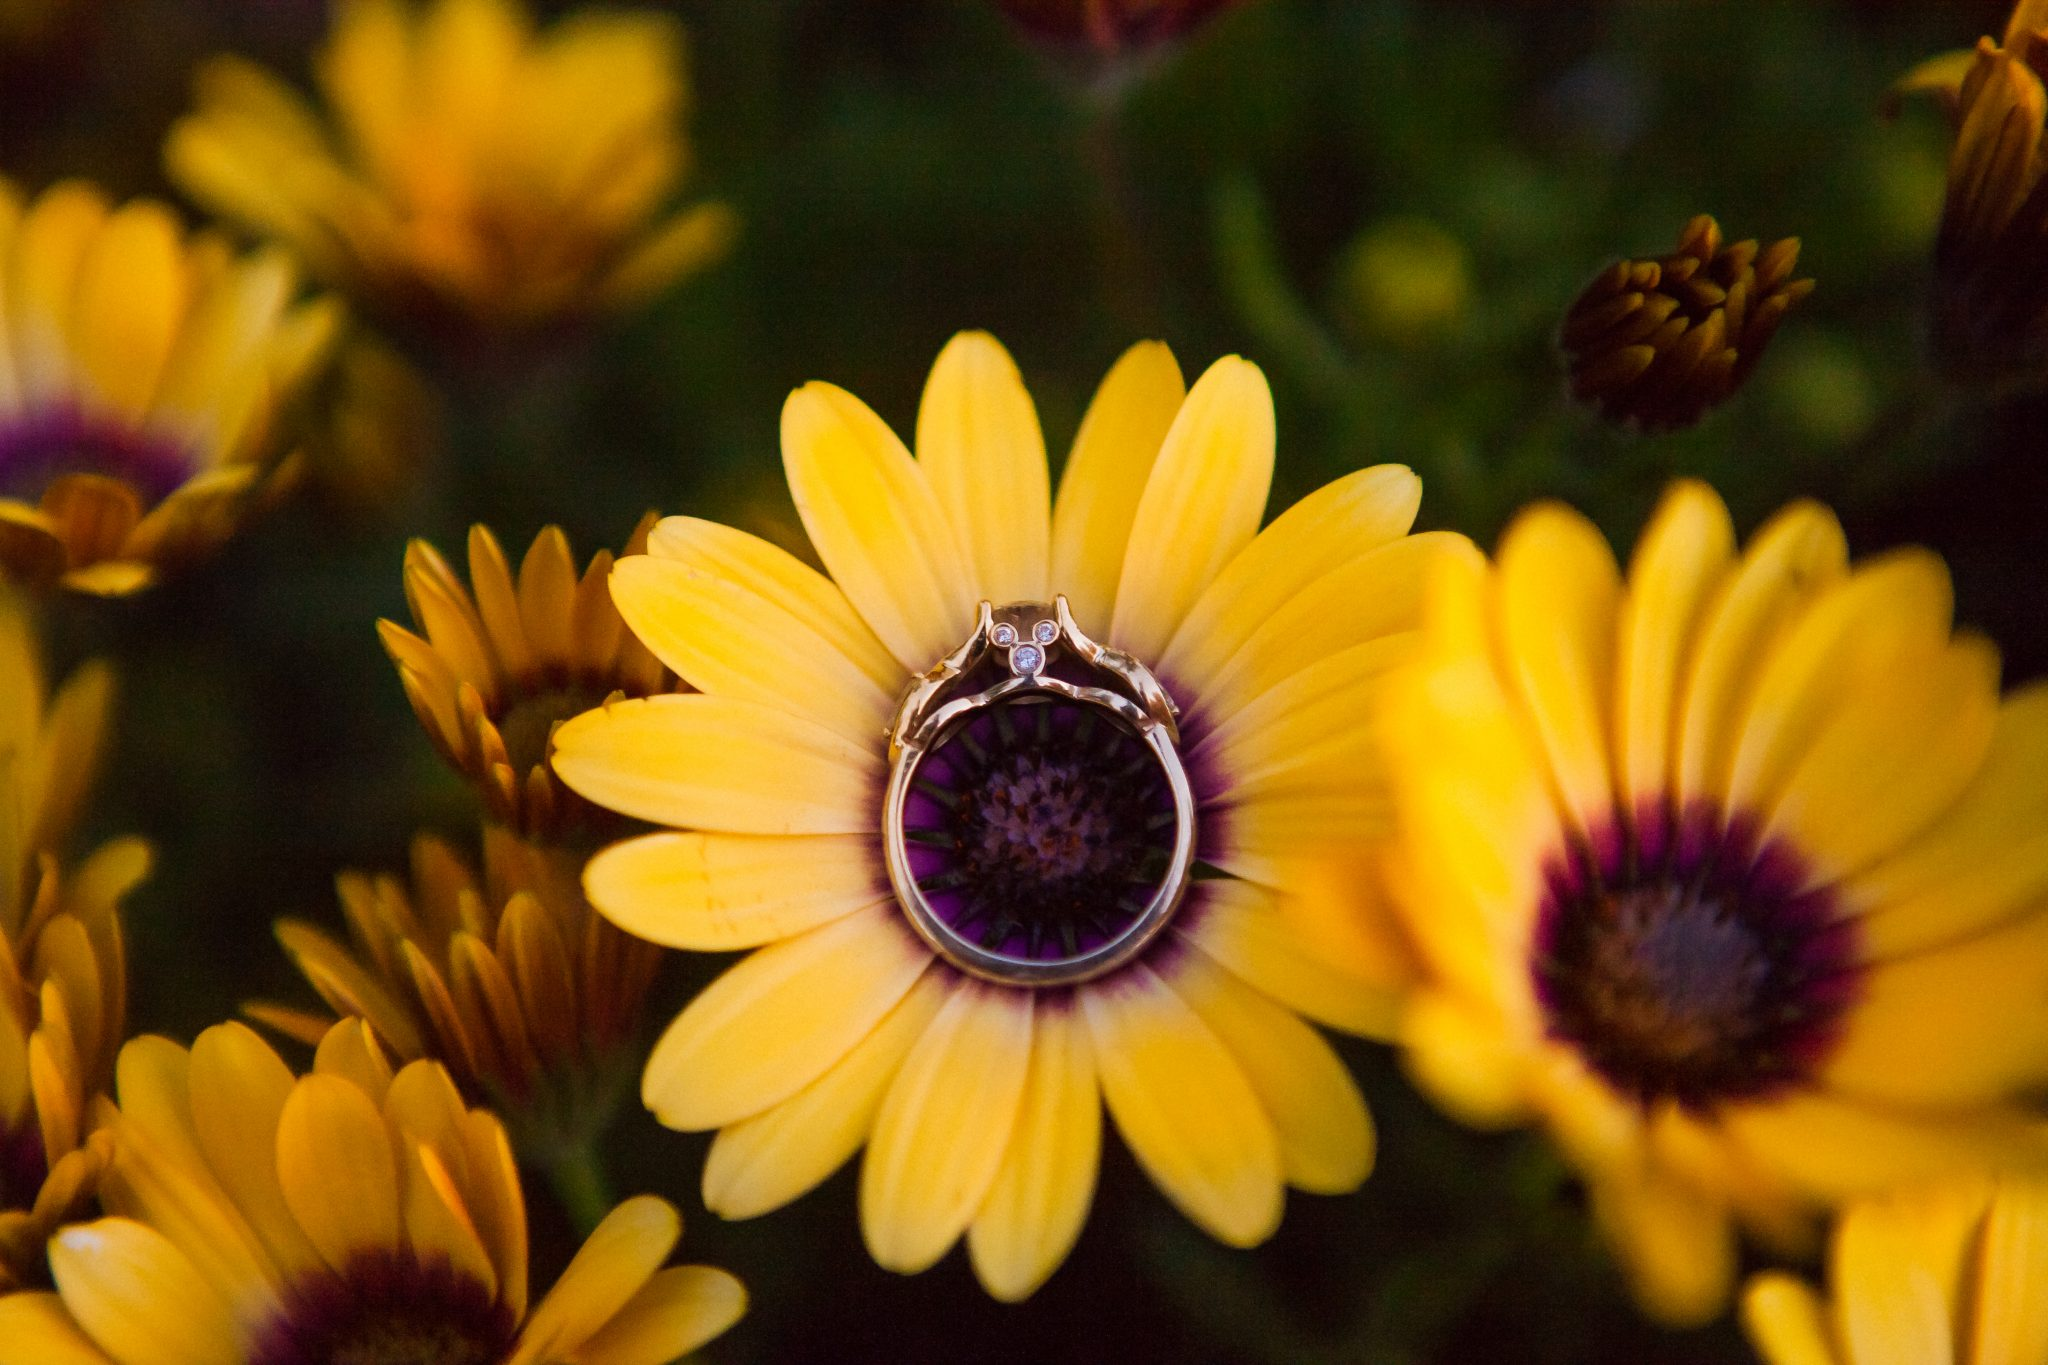 Artistic photo of an engagement ring in a sunflower